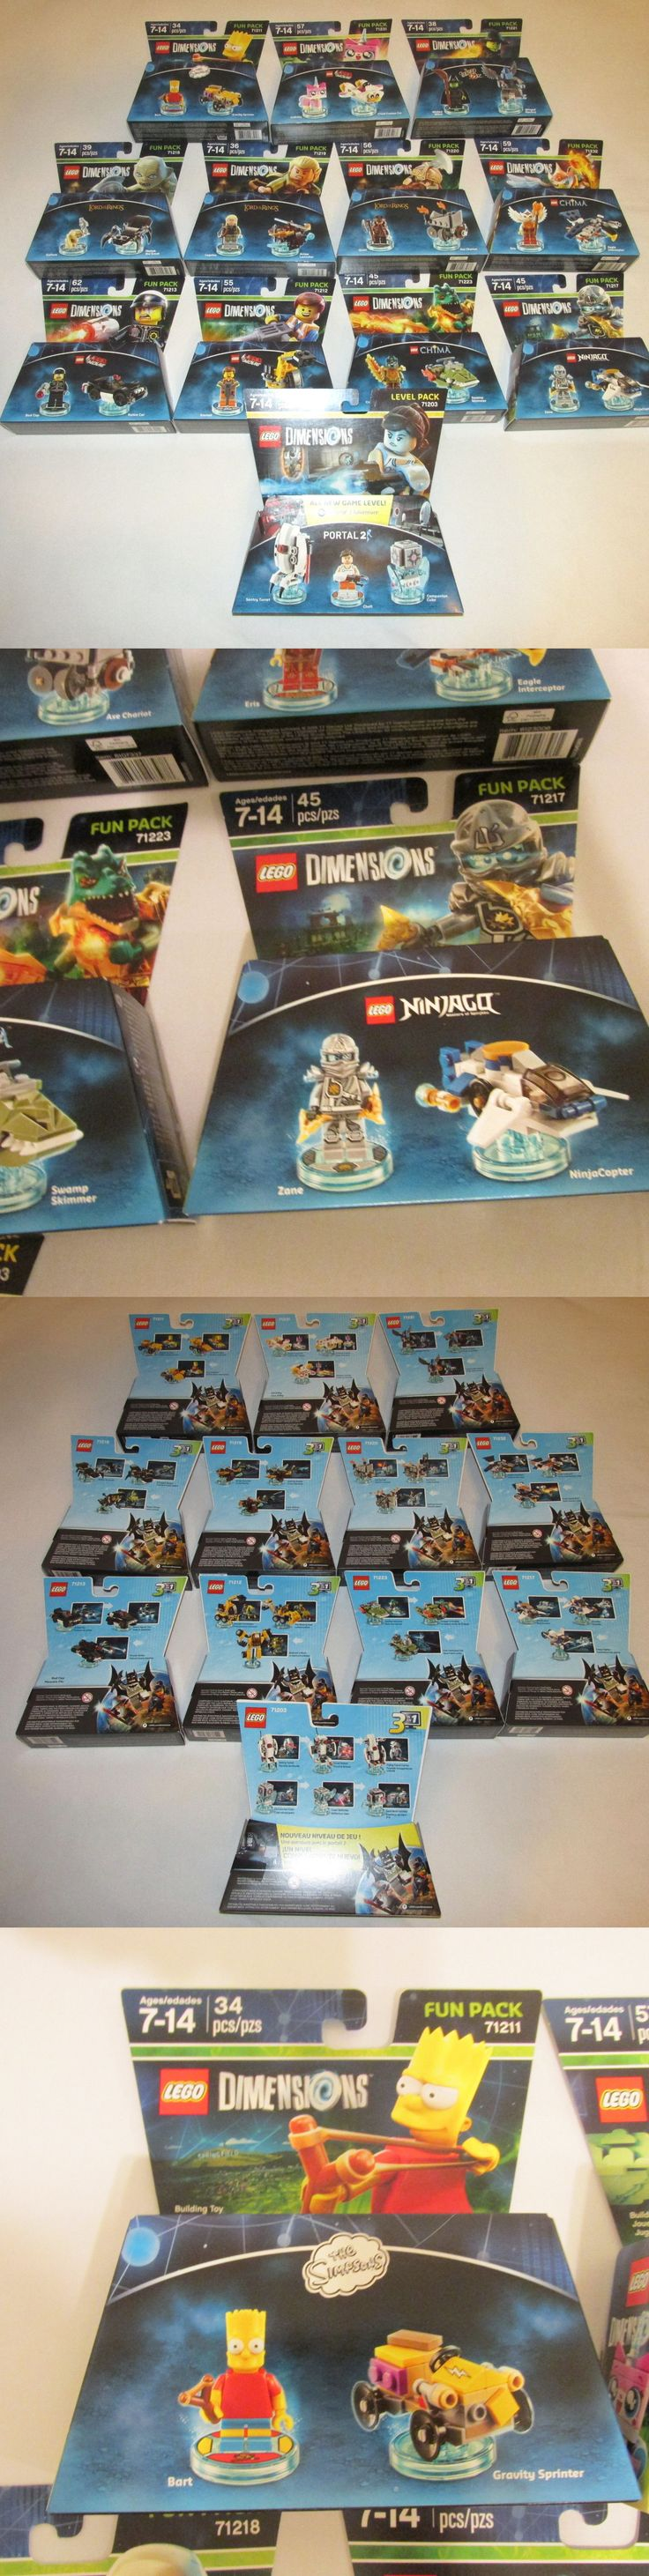 Mixed Lots 183451: Lego Dimensions 12 New Sets Minifigures Simpsons Ninjago Wizard Of Oz Portal -> BUY IT NOW ONLY: $47.98 on eBay!